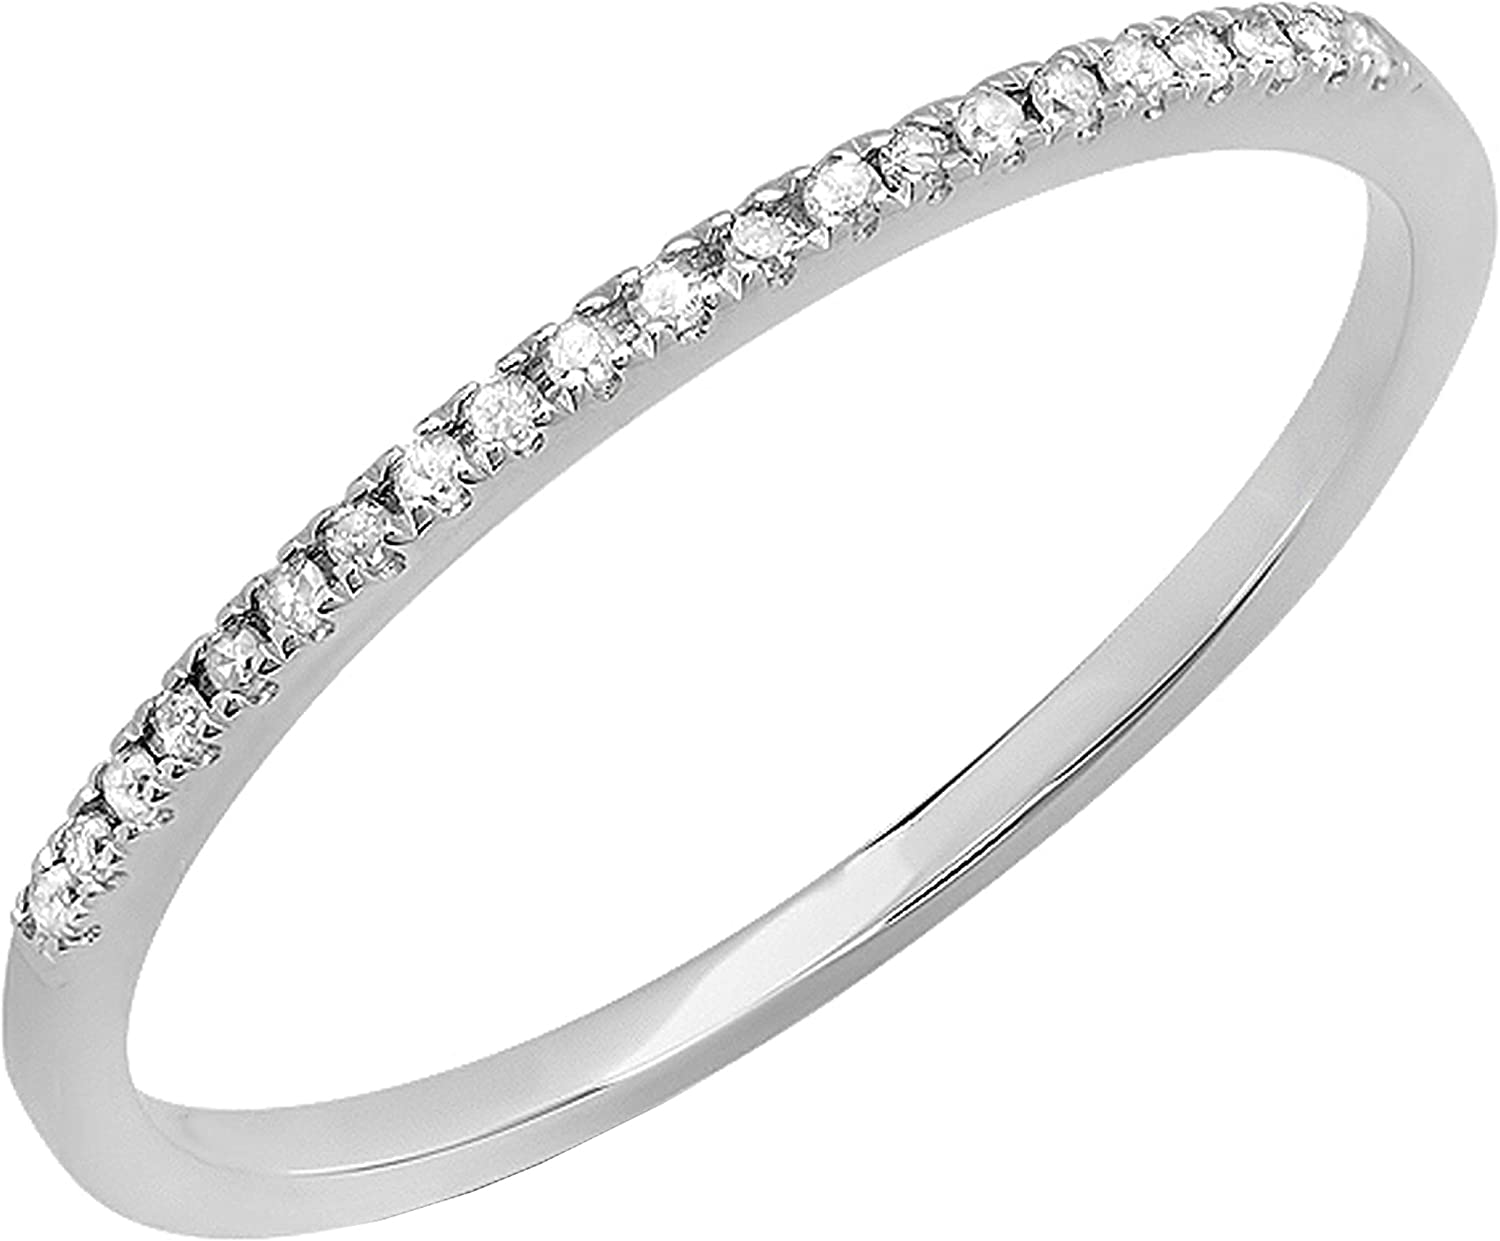 Dazzlingrock Collection 0.08 Carat (ctw) Round White Diamond Ladies Dainty Anniversary Wedding Band Stackable Ring, 14K White Gold, Size 5